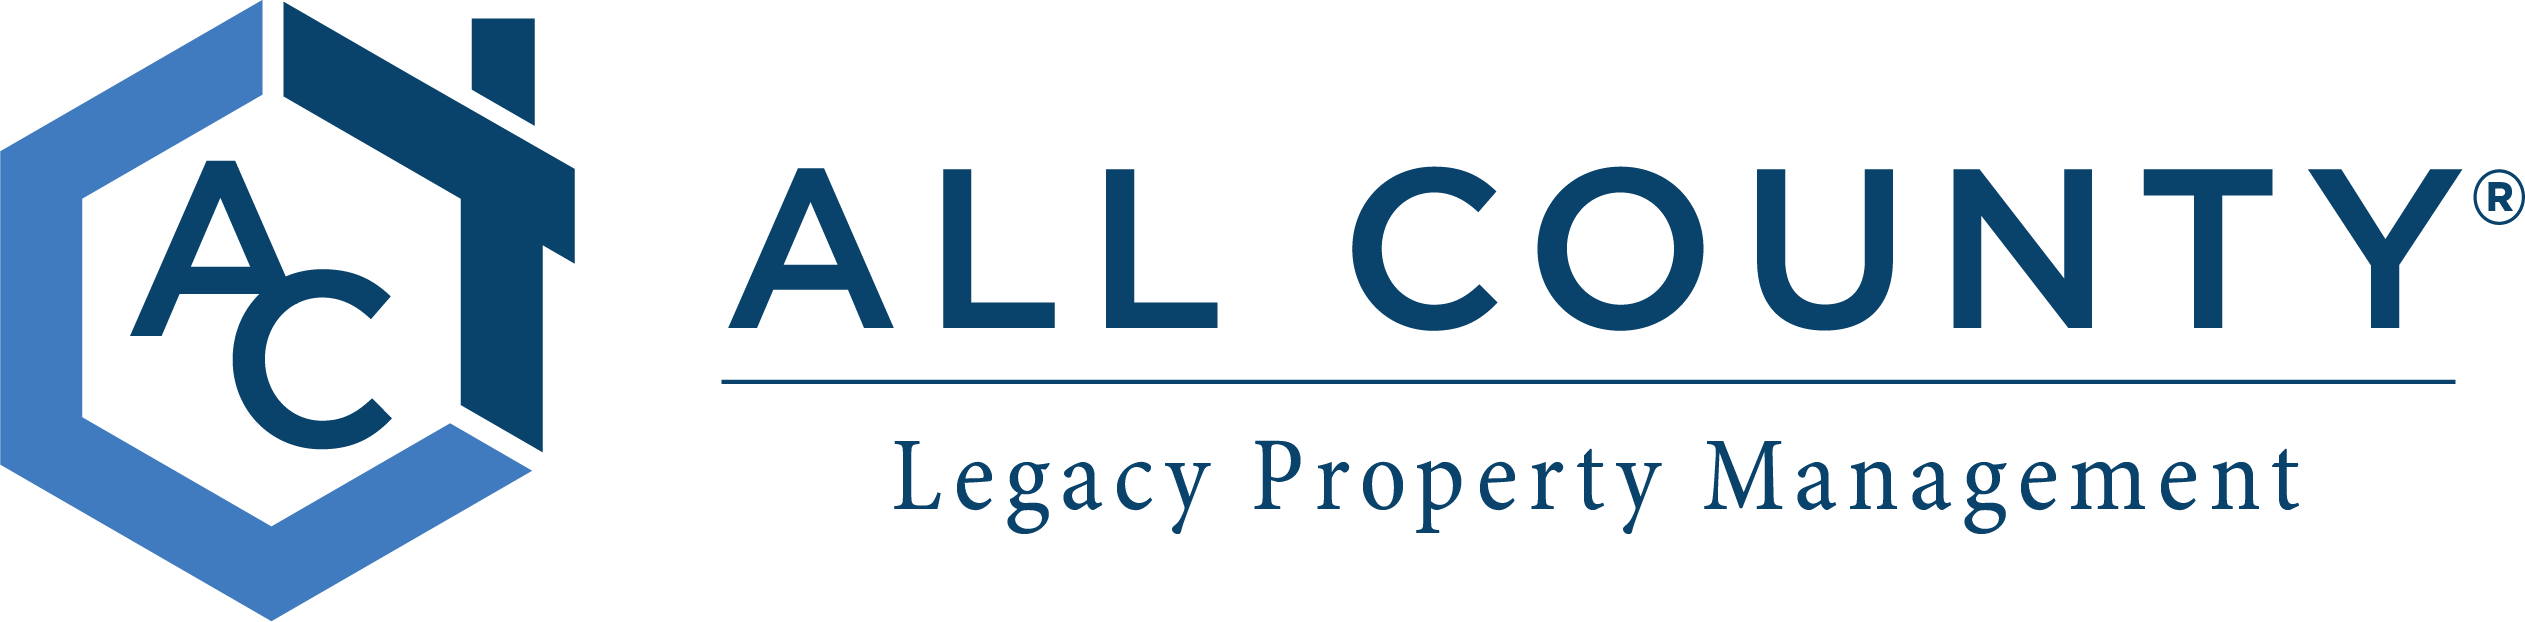 All County Legacy Property Management